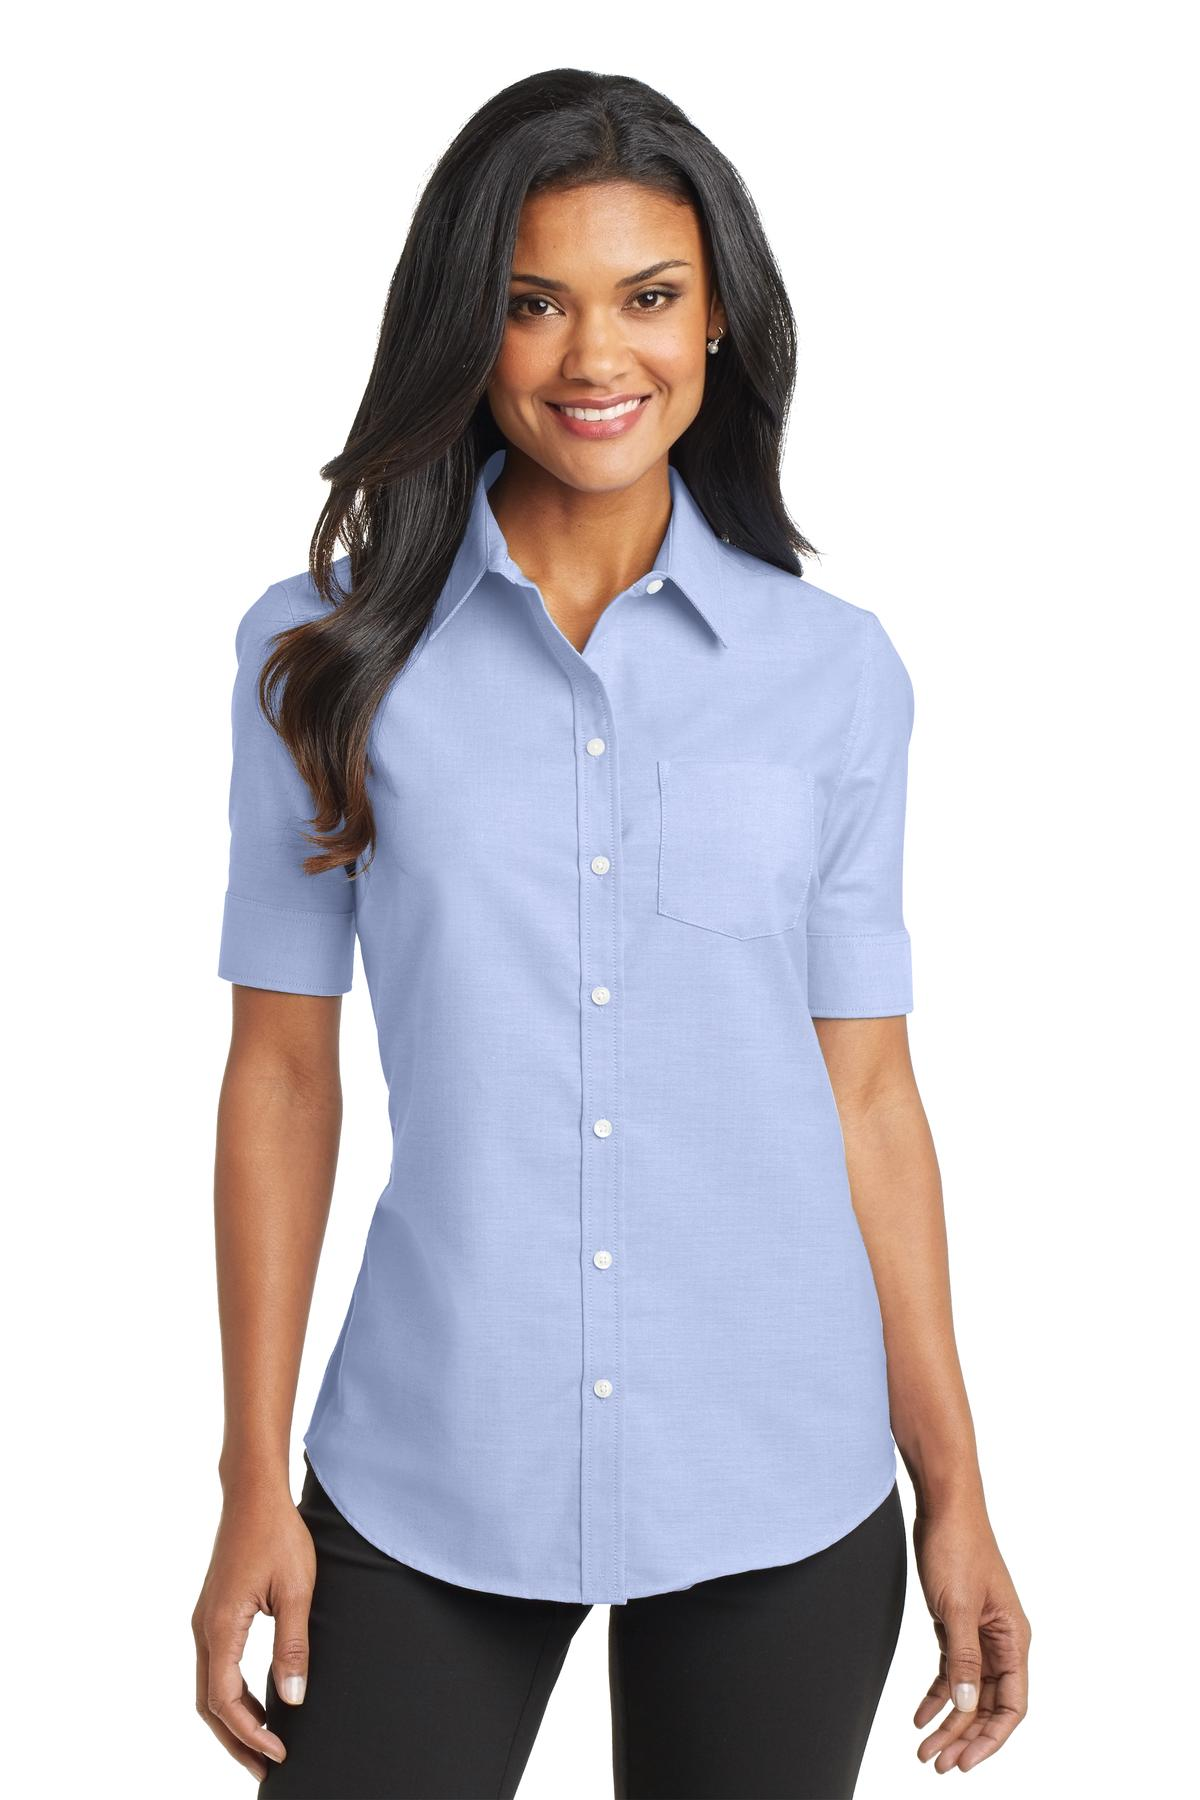 Find great deals on eBay for womens shirts. Shop with confidence.